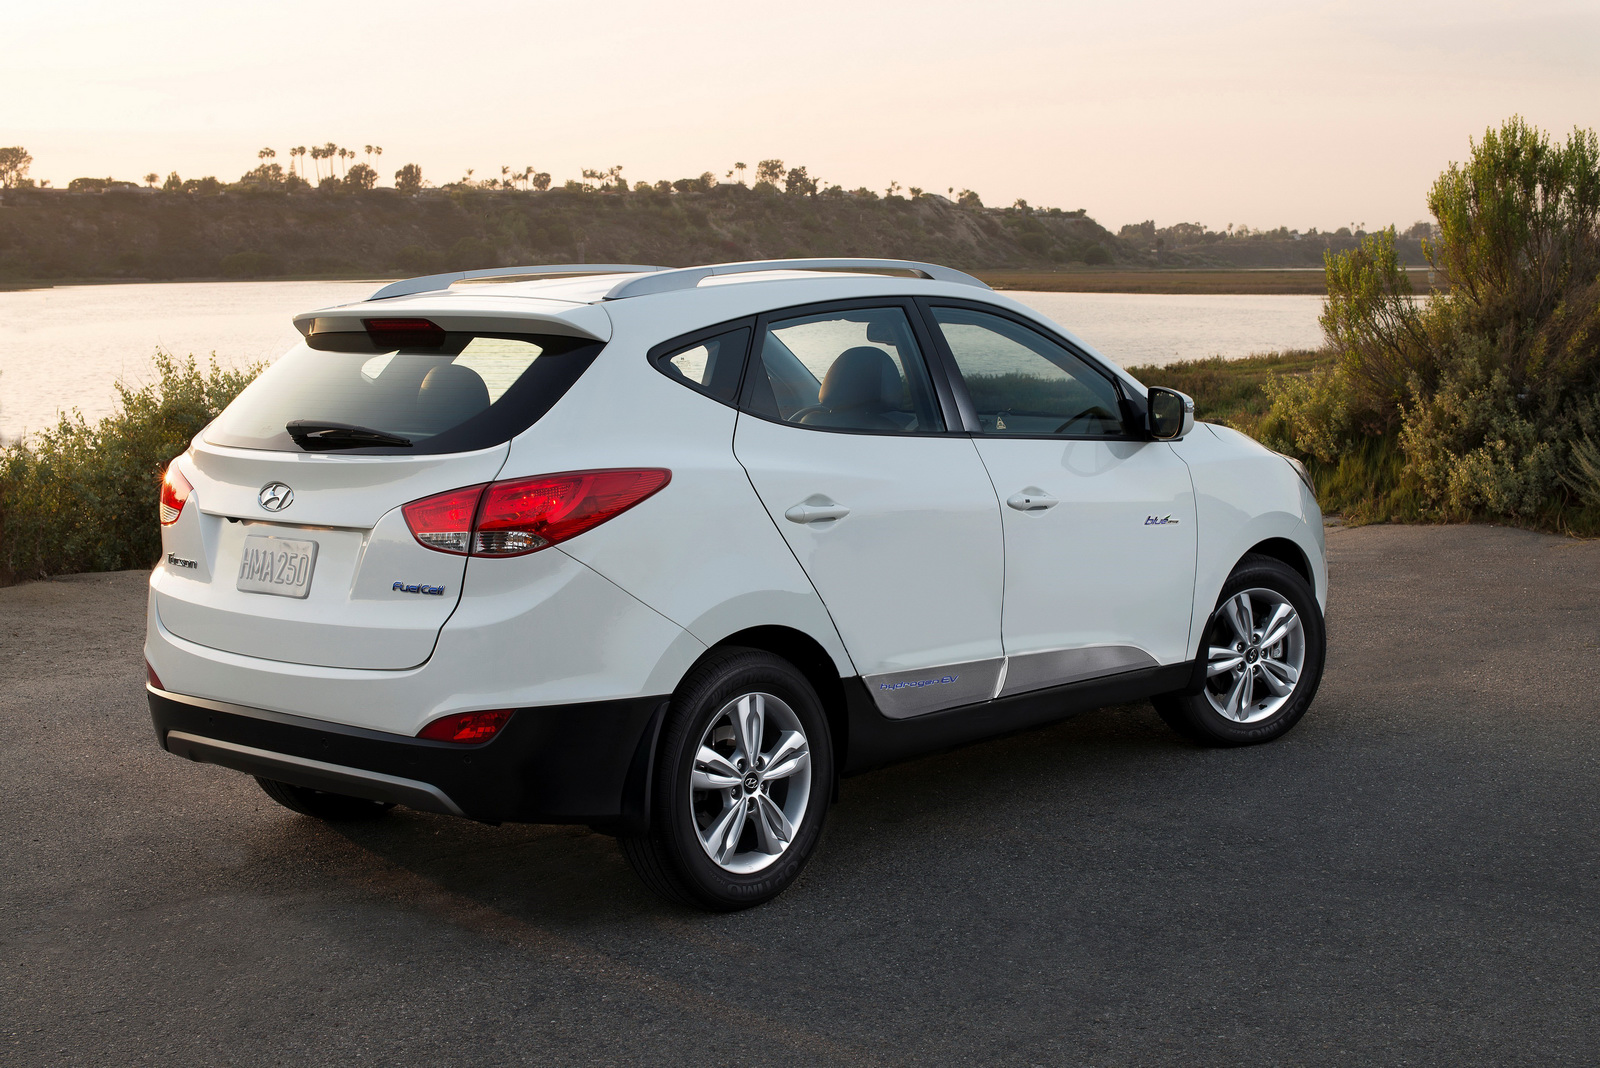 Hyundai To Debut New Fuel Cell Model At 2018 Winter Olympics Carscoops